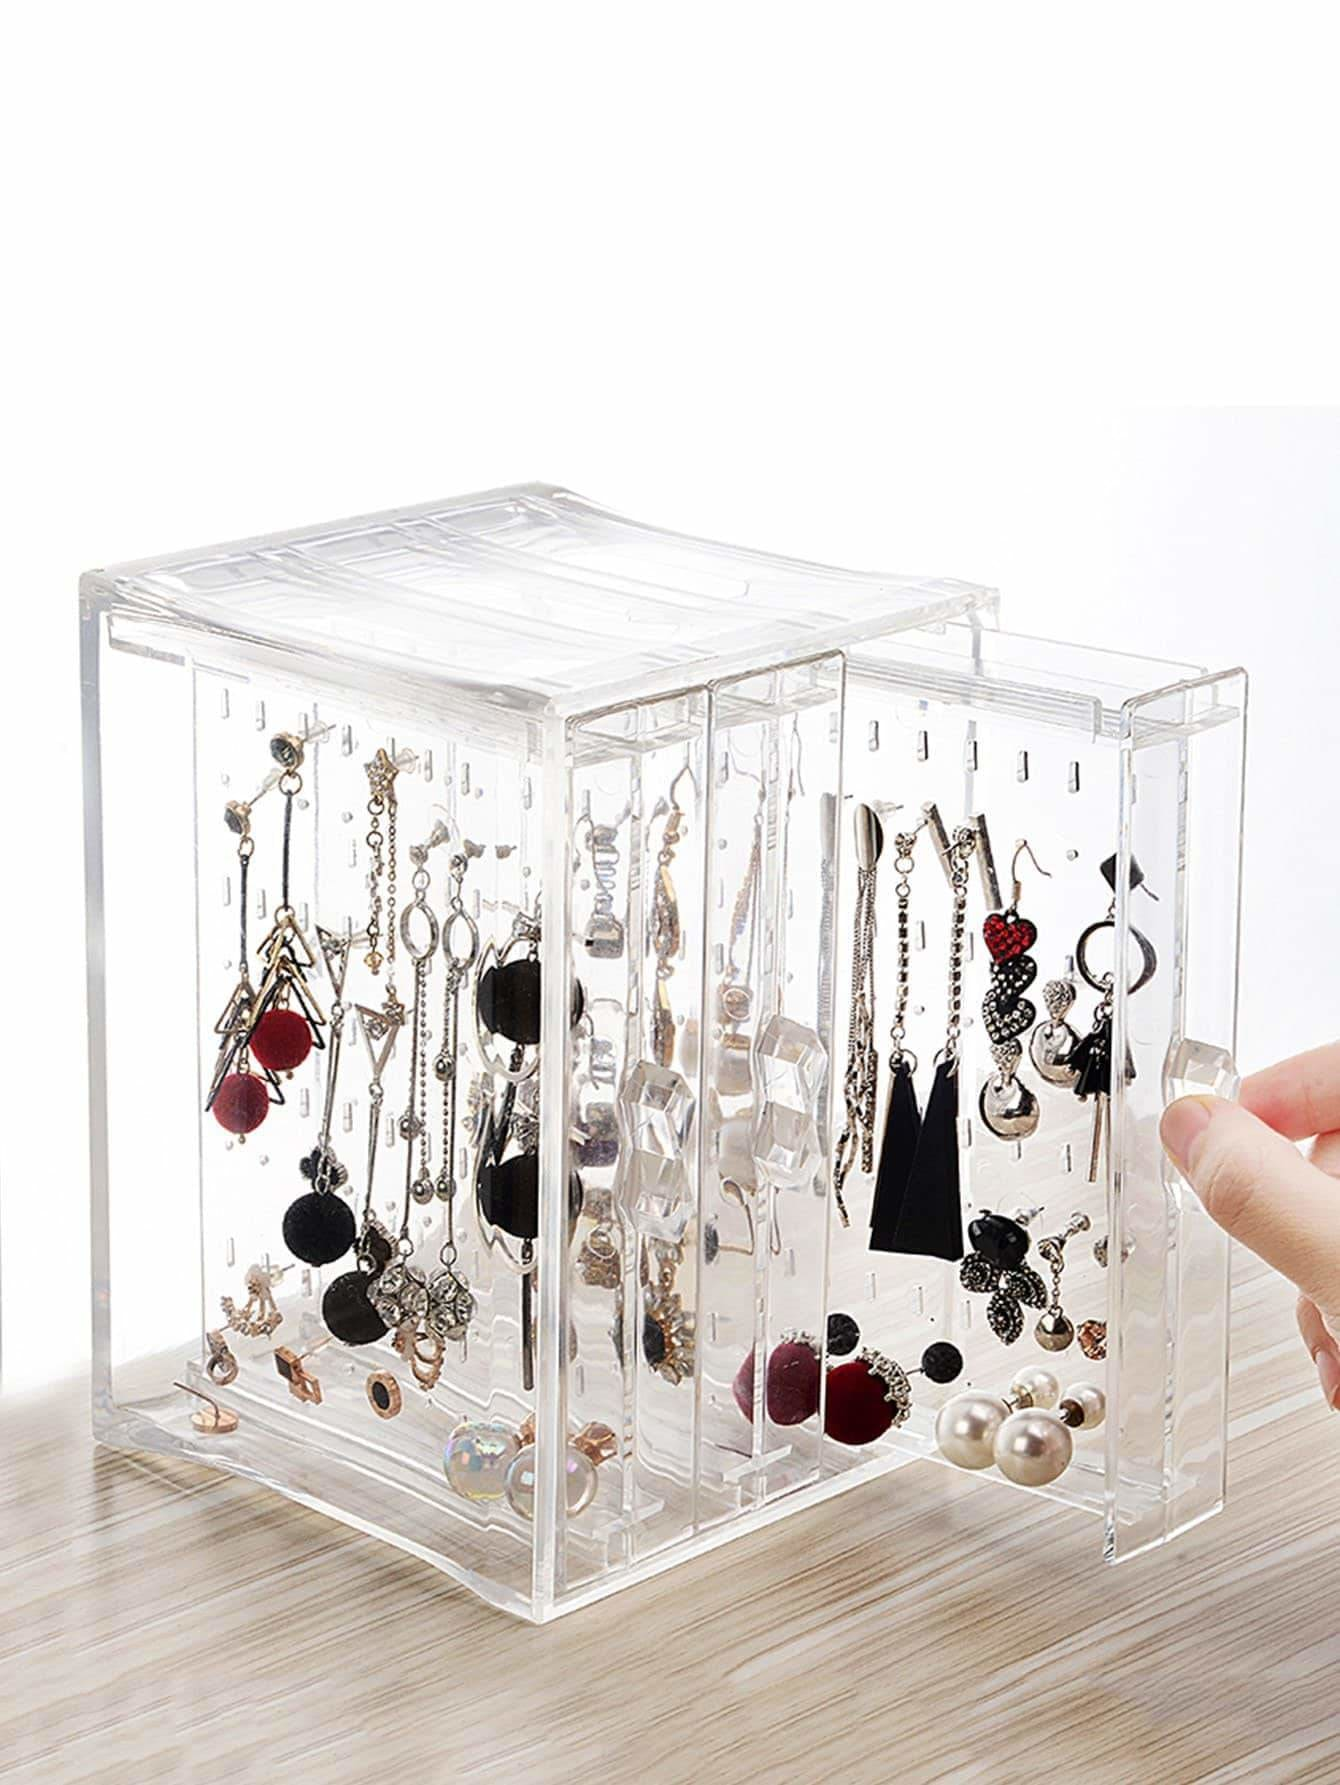 3drawers Clear Jewelry Storage Box - Storage & Organization